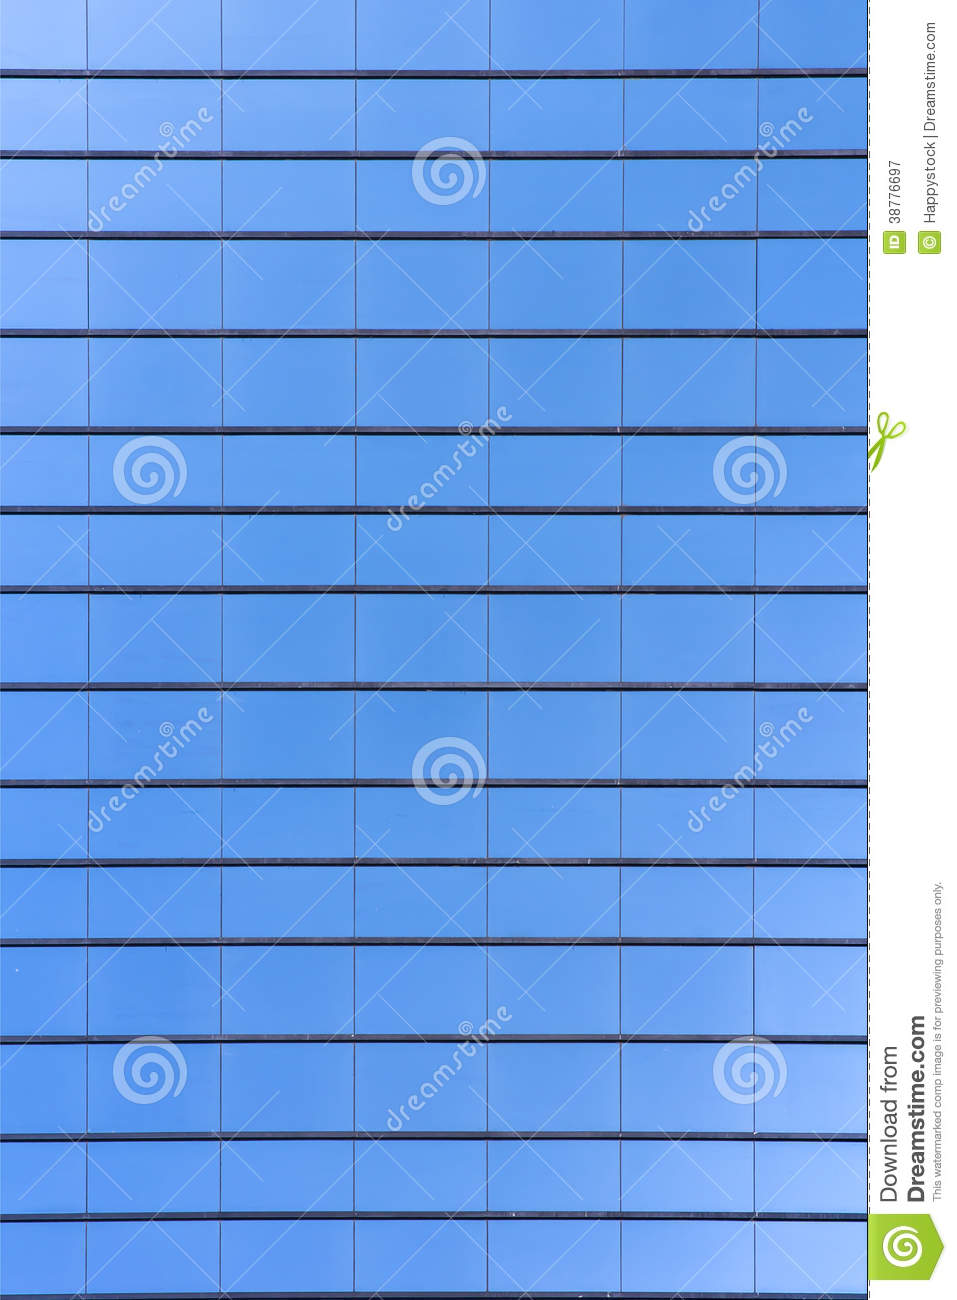 Glass building skyscraper texture pattern stock photo image